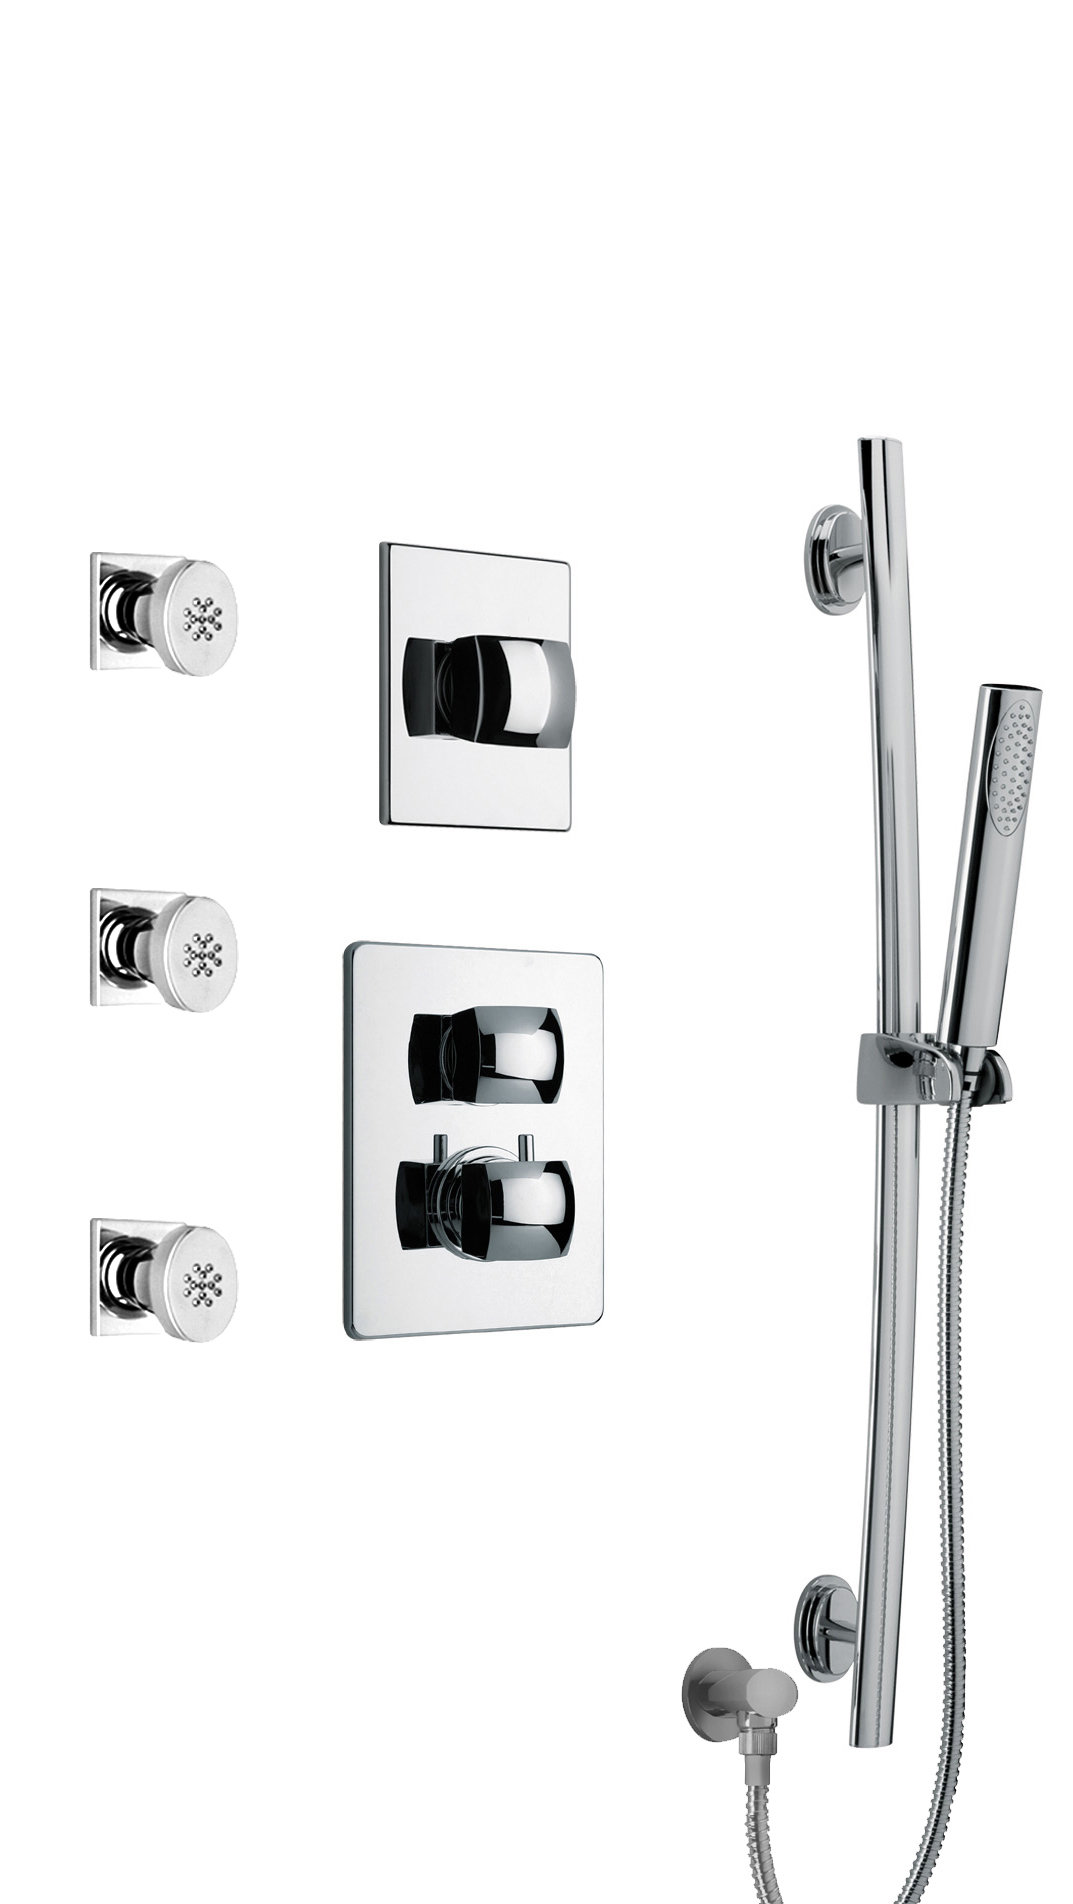 "Thermostatic Shower With 3/4"" Ceramic Disc Volume Control, 3-Way Diverter, Slide Bar and 3 Body Jets in Chrome"